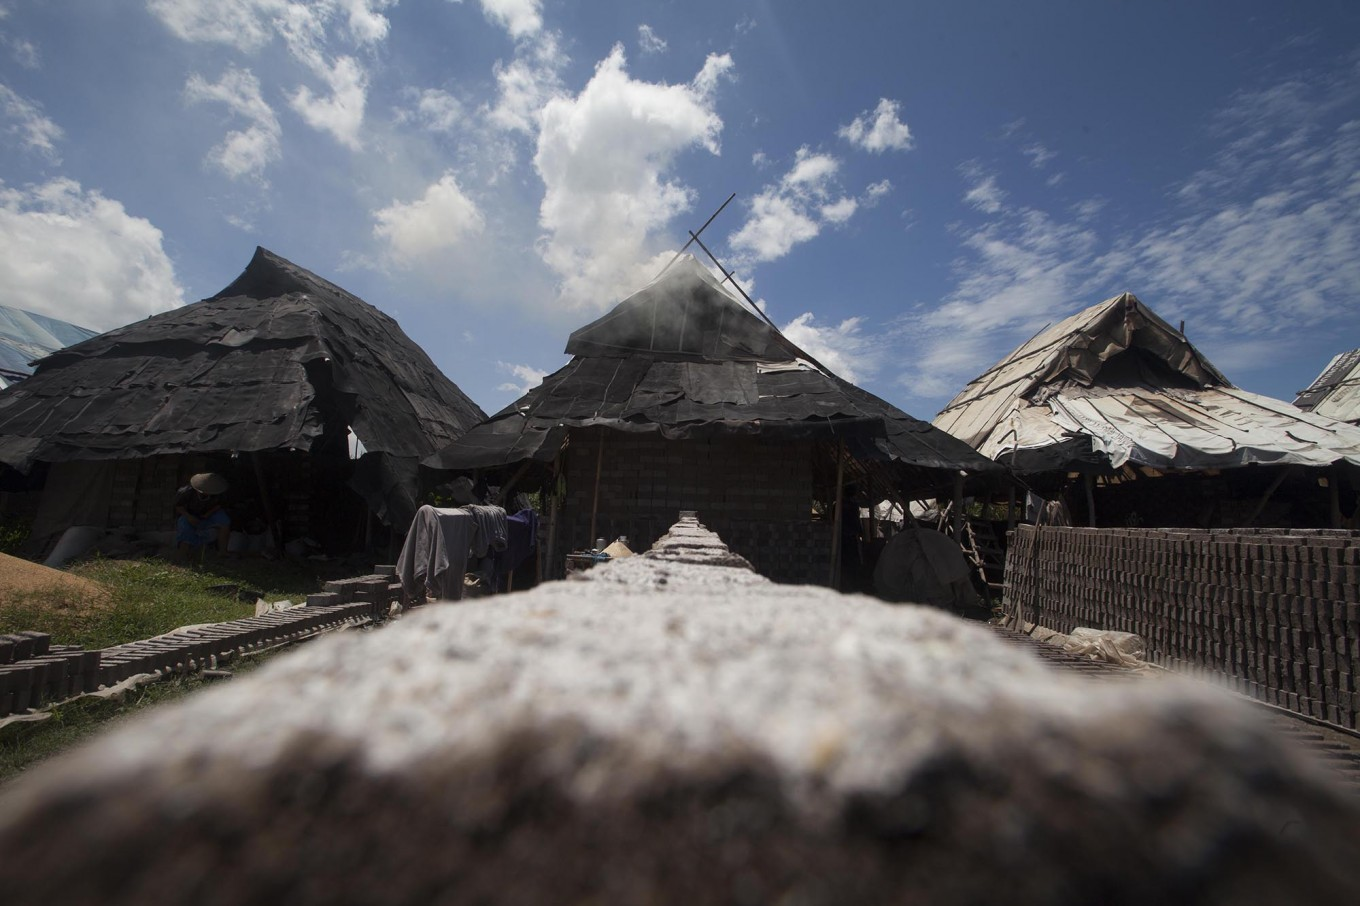 Three huts are used by brick makers to protect the bricks from rain during the firing process.  JP/Sigit Pamungkas